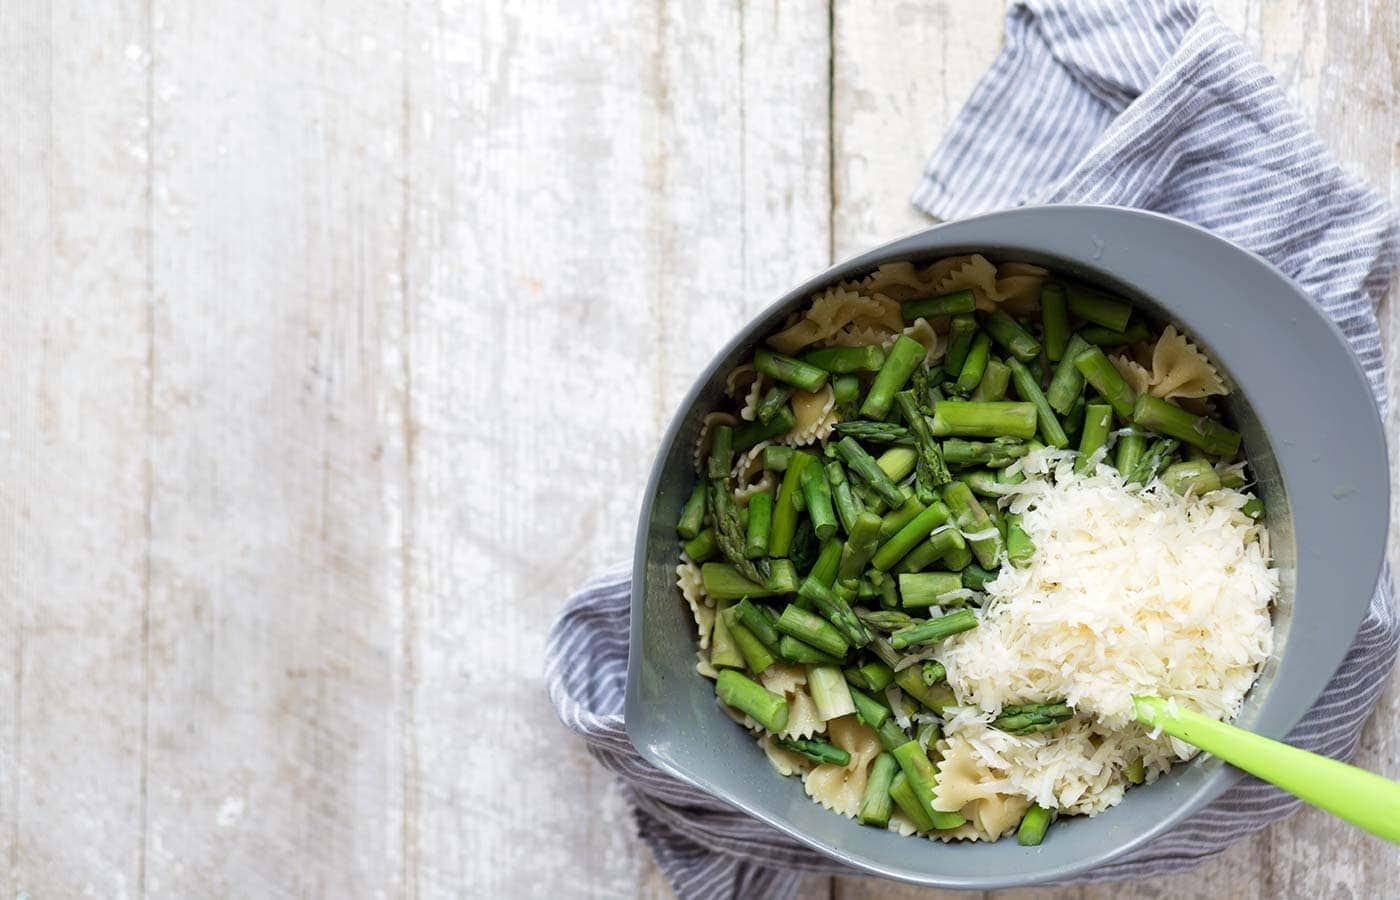 Pasta Salad with Asparagus, Asiago and Lemon is a light, seasonal side dish. Serve it at a barbecue or alongside a simple springtime dinner. SavorySimple.net